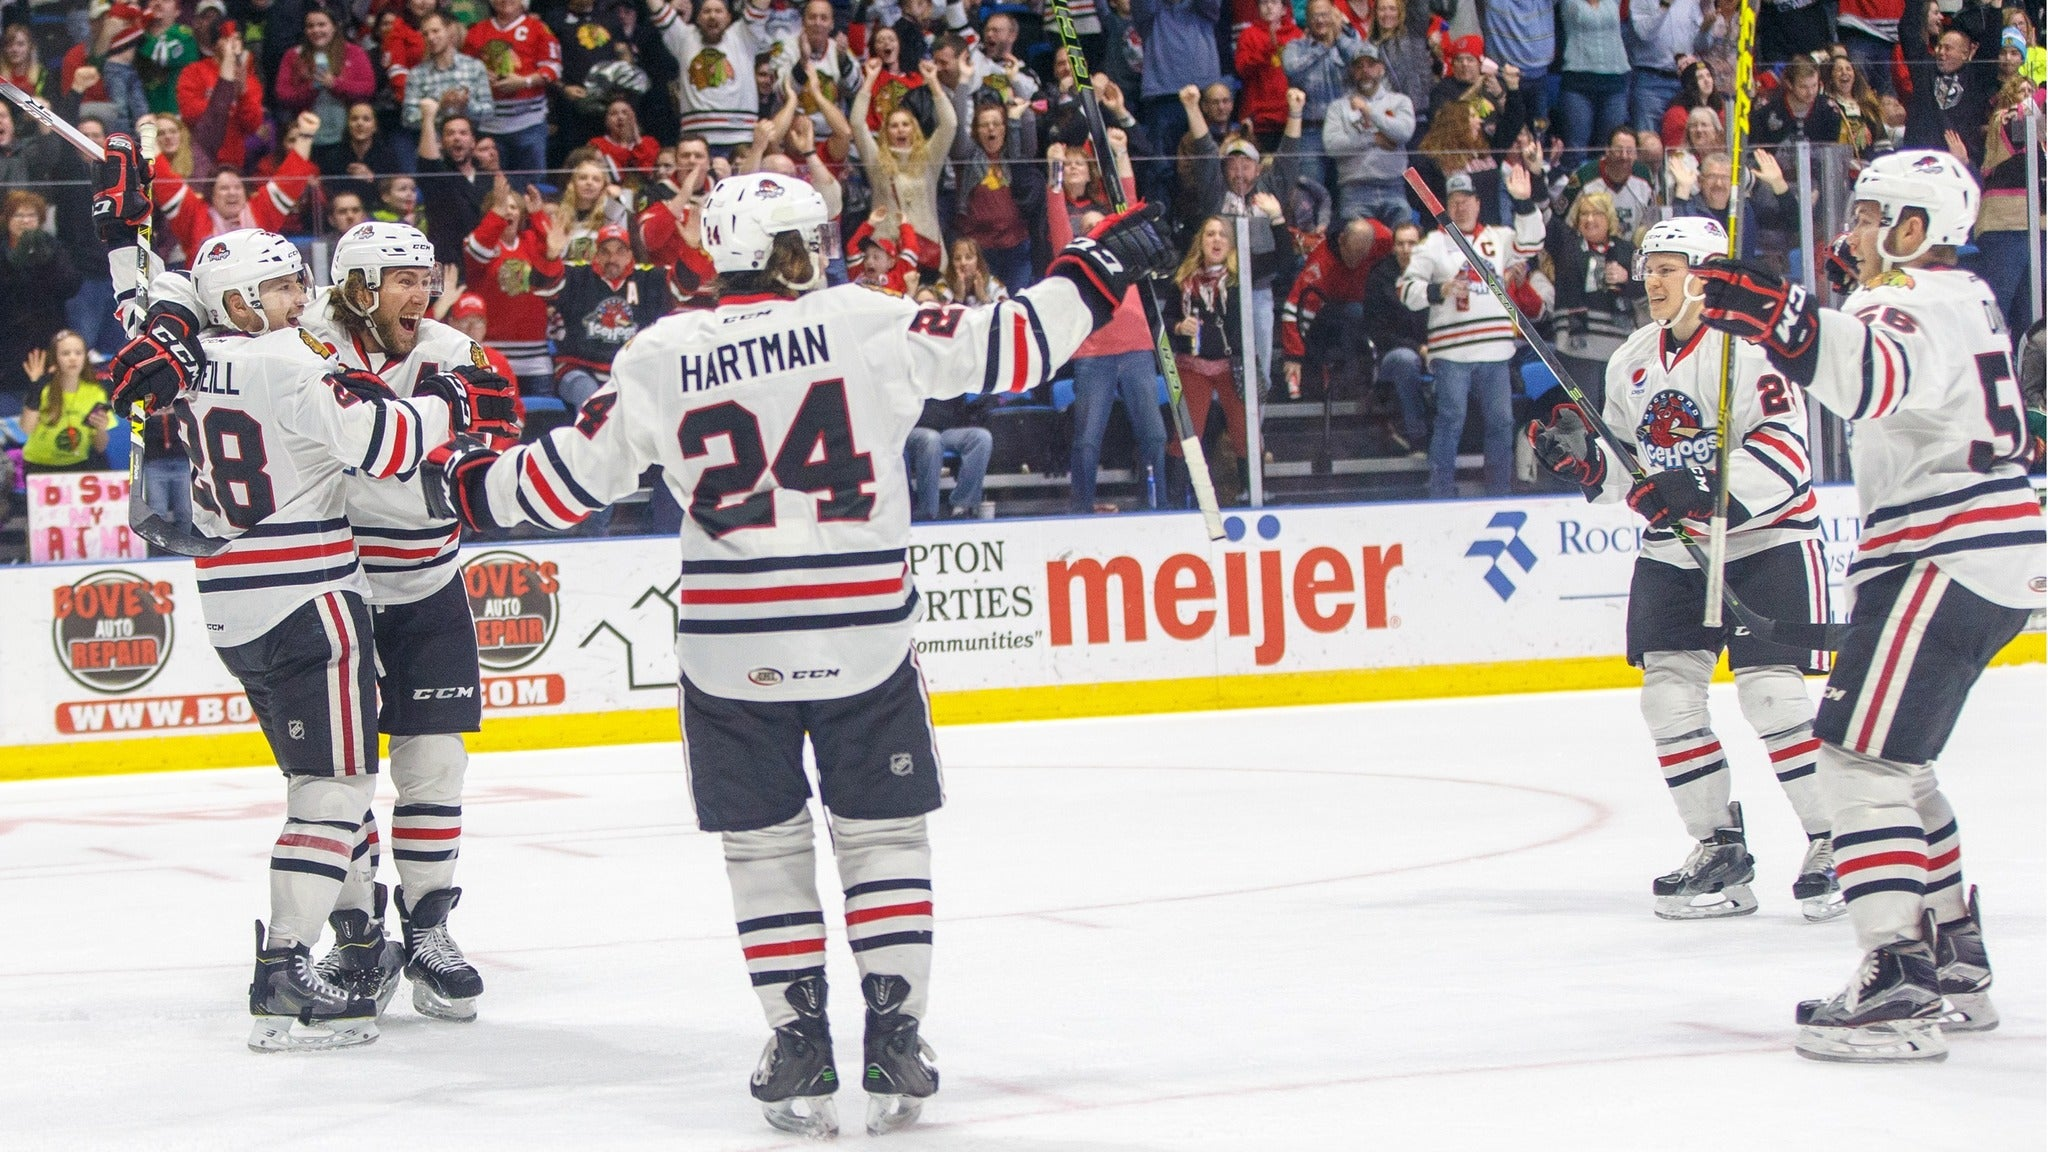 Rockford IceHogs vs. Ontario Reign at BMO Harris Bank Center